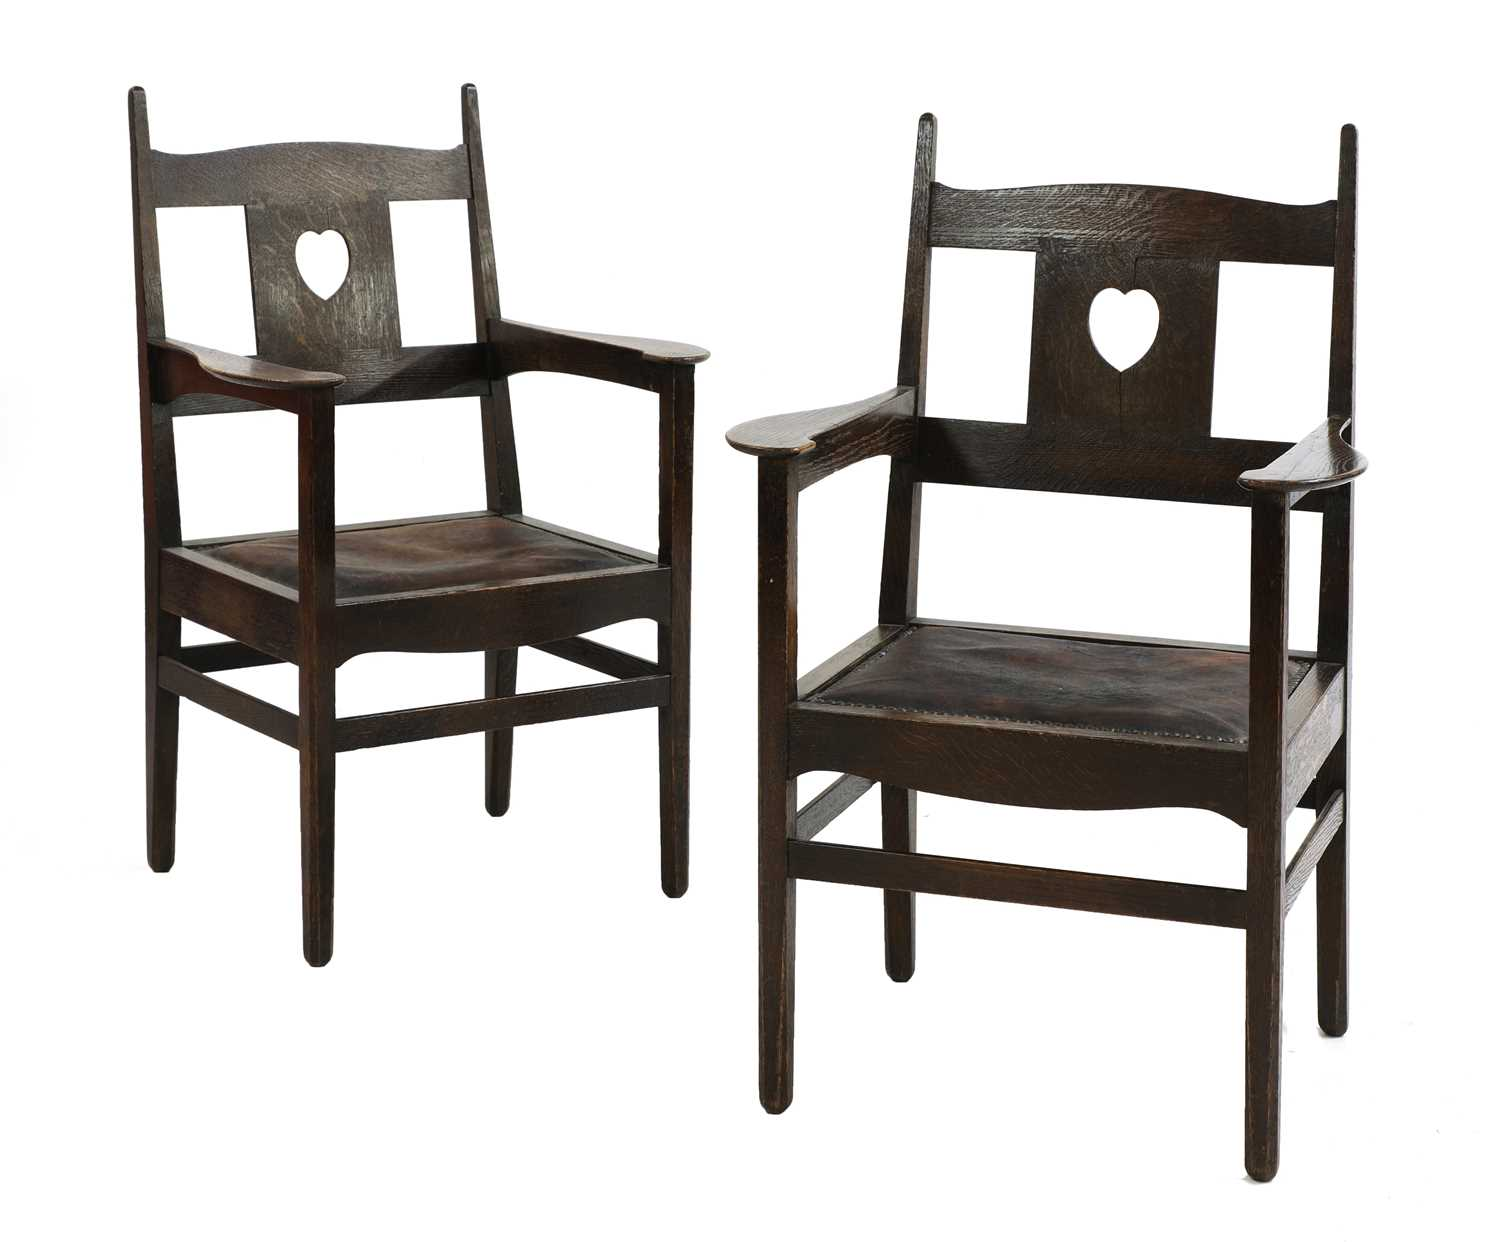 224 - A pair of rare Arts and Crafts oak armchairs,